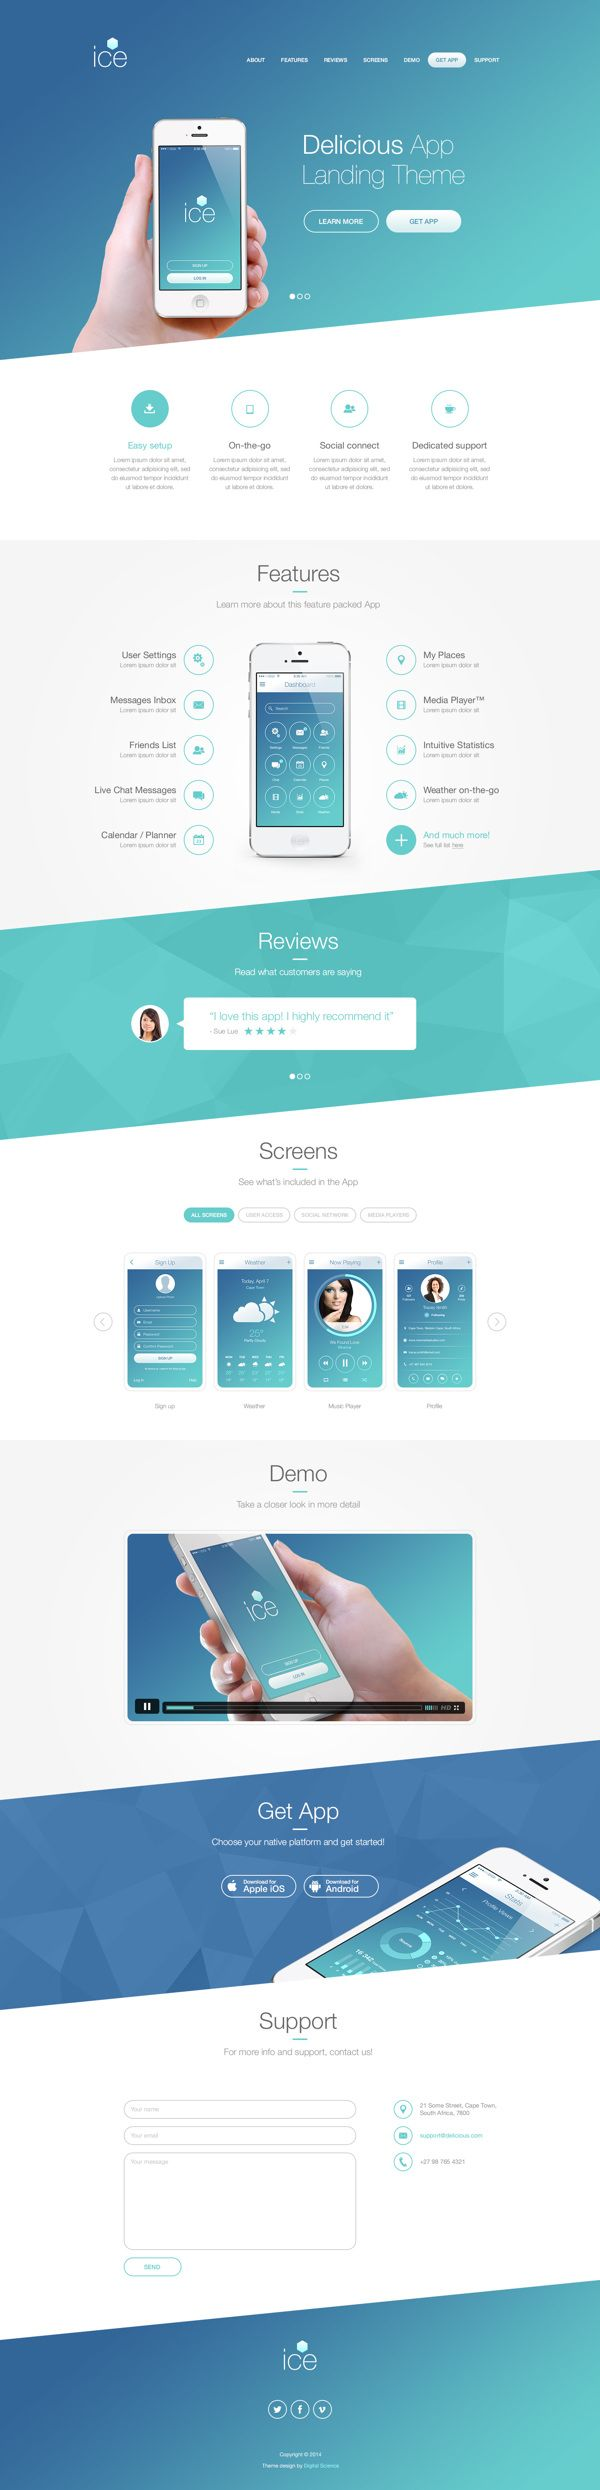 Delicious App Landing Theme on Behance